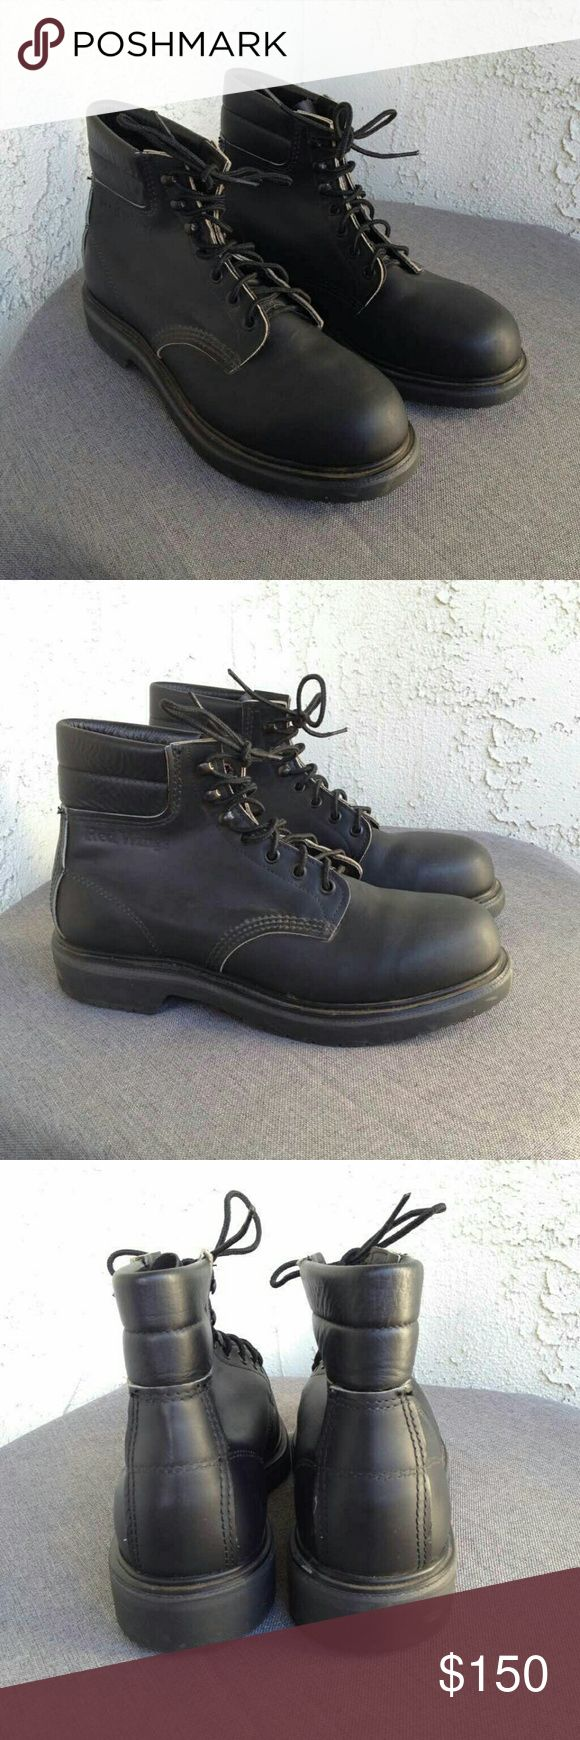 Red Wing Mens Black Oil Resistant Steel Toe Boots Red Wing Mens Boots Black Leather Oil Resistant Steel Toe 2243 Shoes USA $220  Type: Boots Style: Lace Up / Steel Toe / Padded Leather Collar  Style Number: 2243 Brand: Red Wing Shoes Size: 7.5 / 7.5D Material: Leather & Steel Upper / Oil & Gas Resitant Super Sole / Poron 4000 Insole Cushion w/ Arch Lift  Color: Black  Condition: Excellent , Preowned Condition - Worn Once Country of Manufacturer: USA Red Wing Shoes Shoes Boots